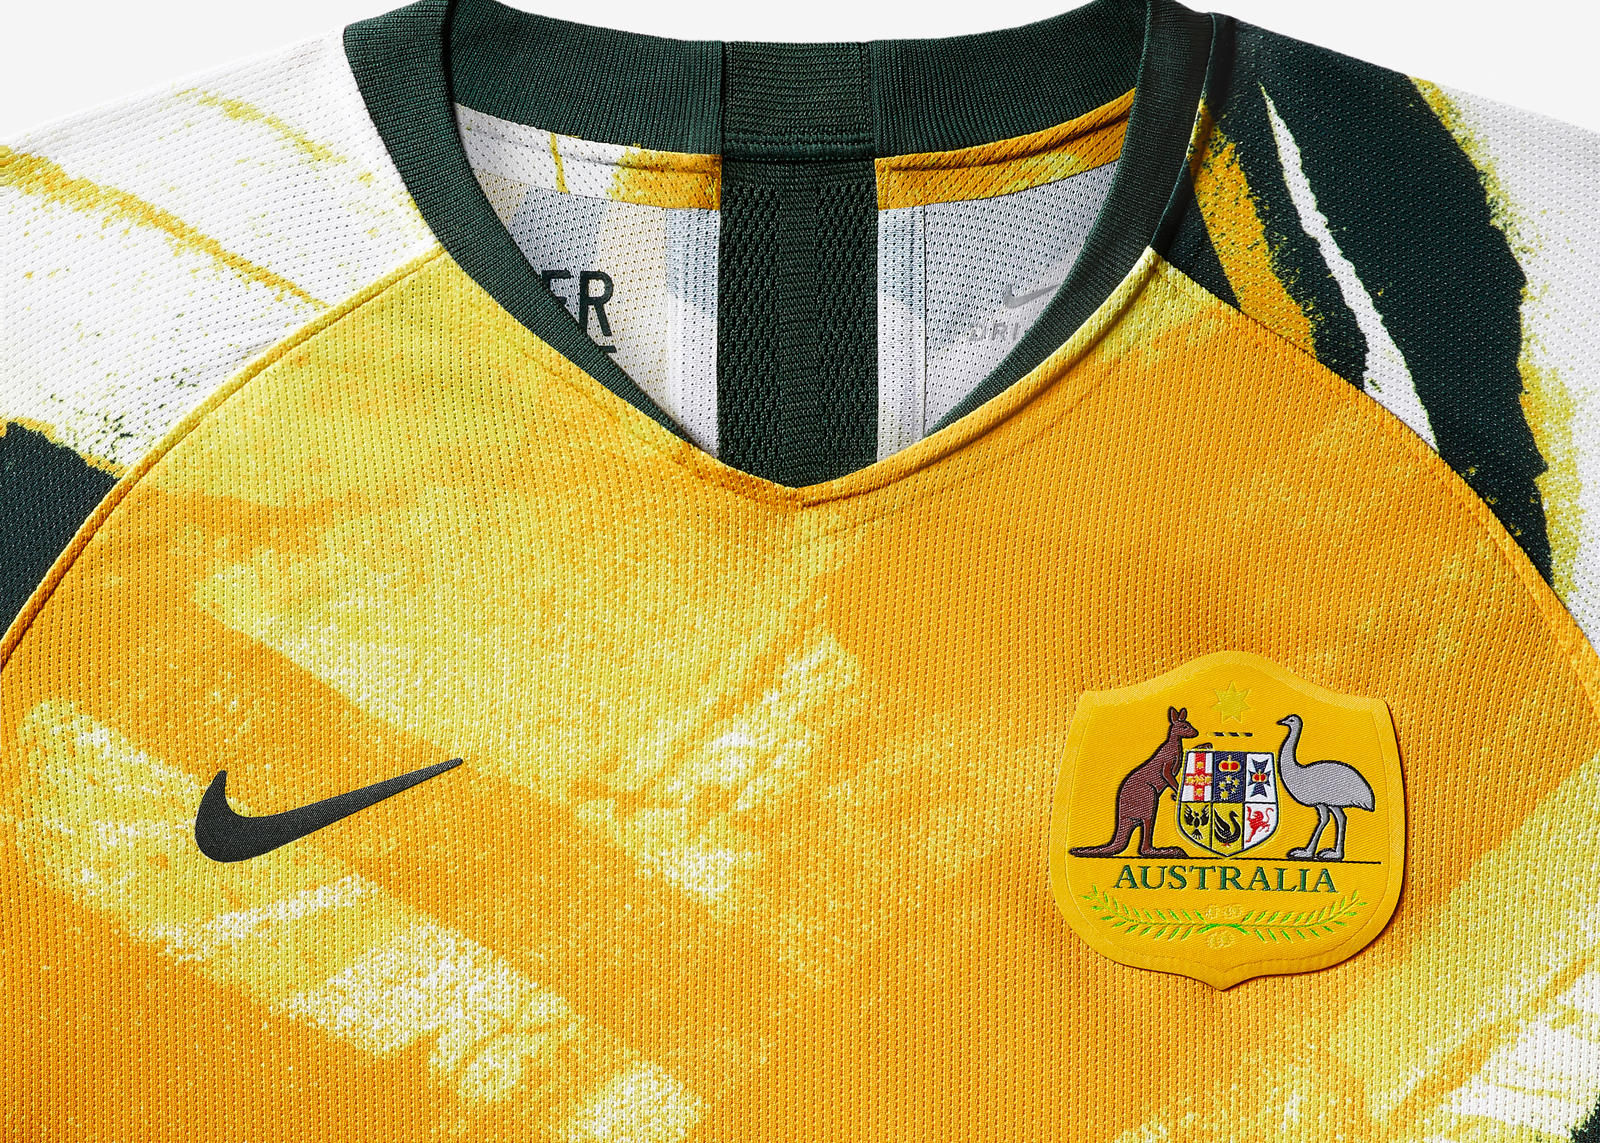 Australia National Team Kit 2019 2